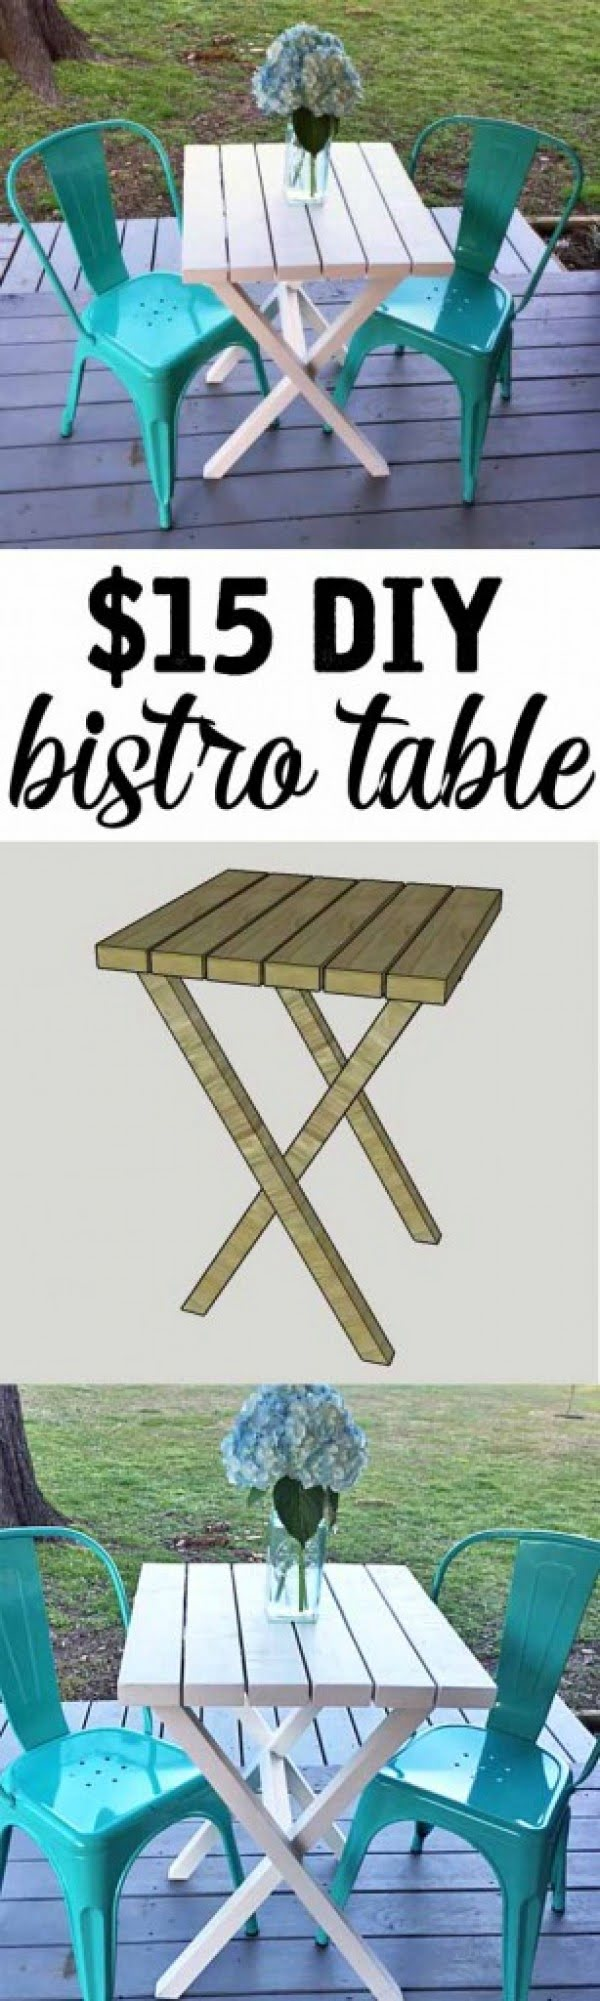 DIY bistro table for under $15